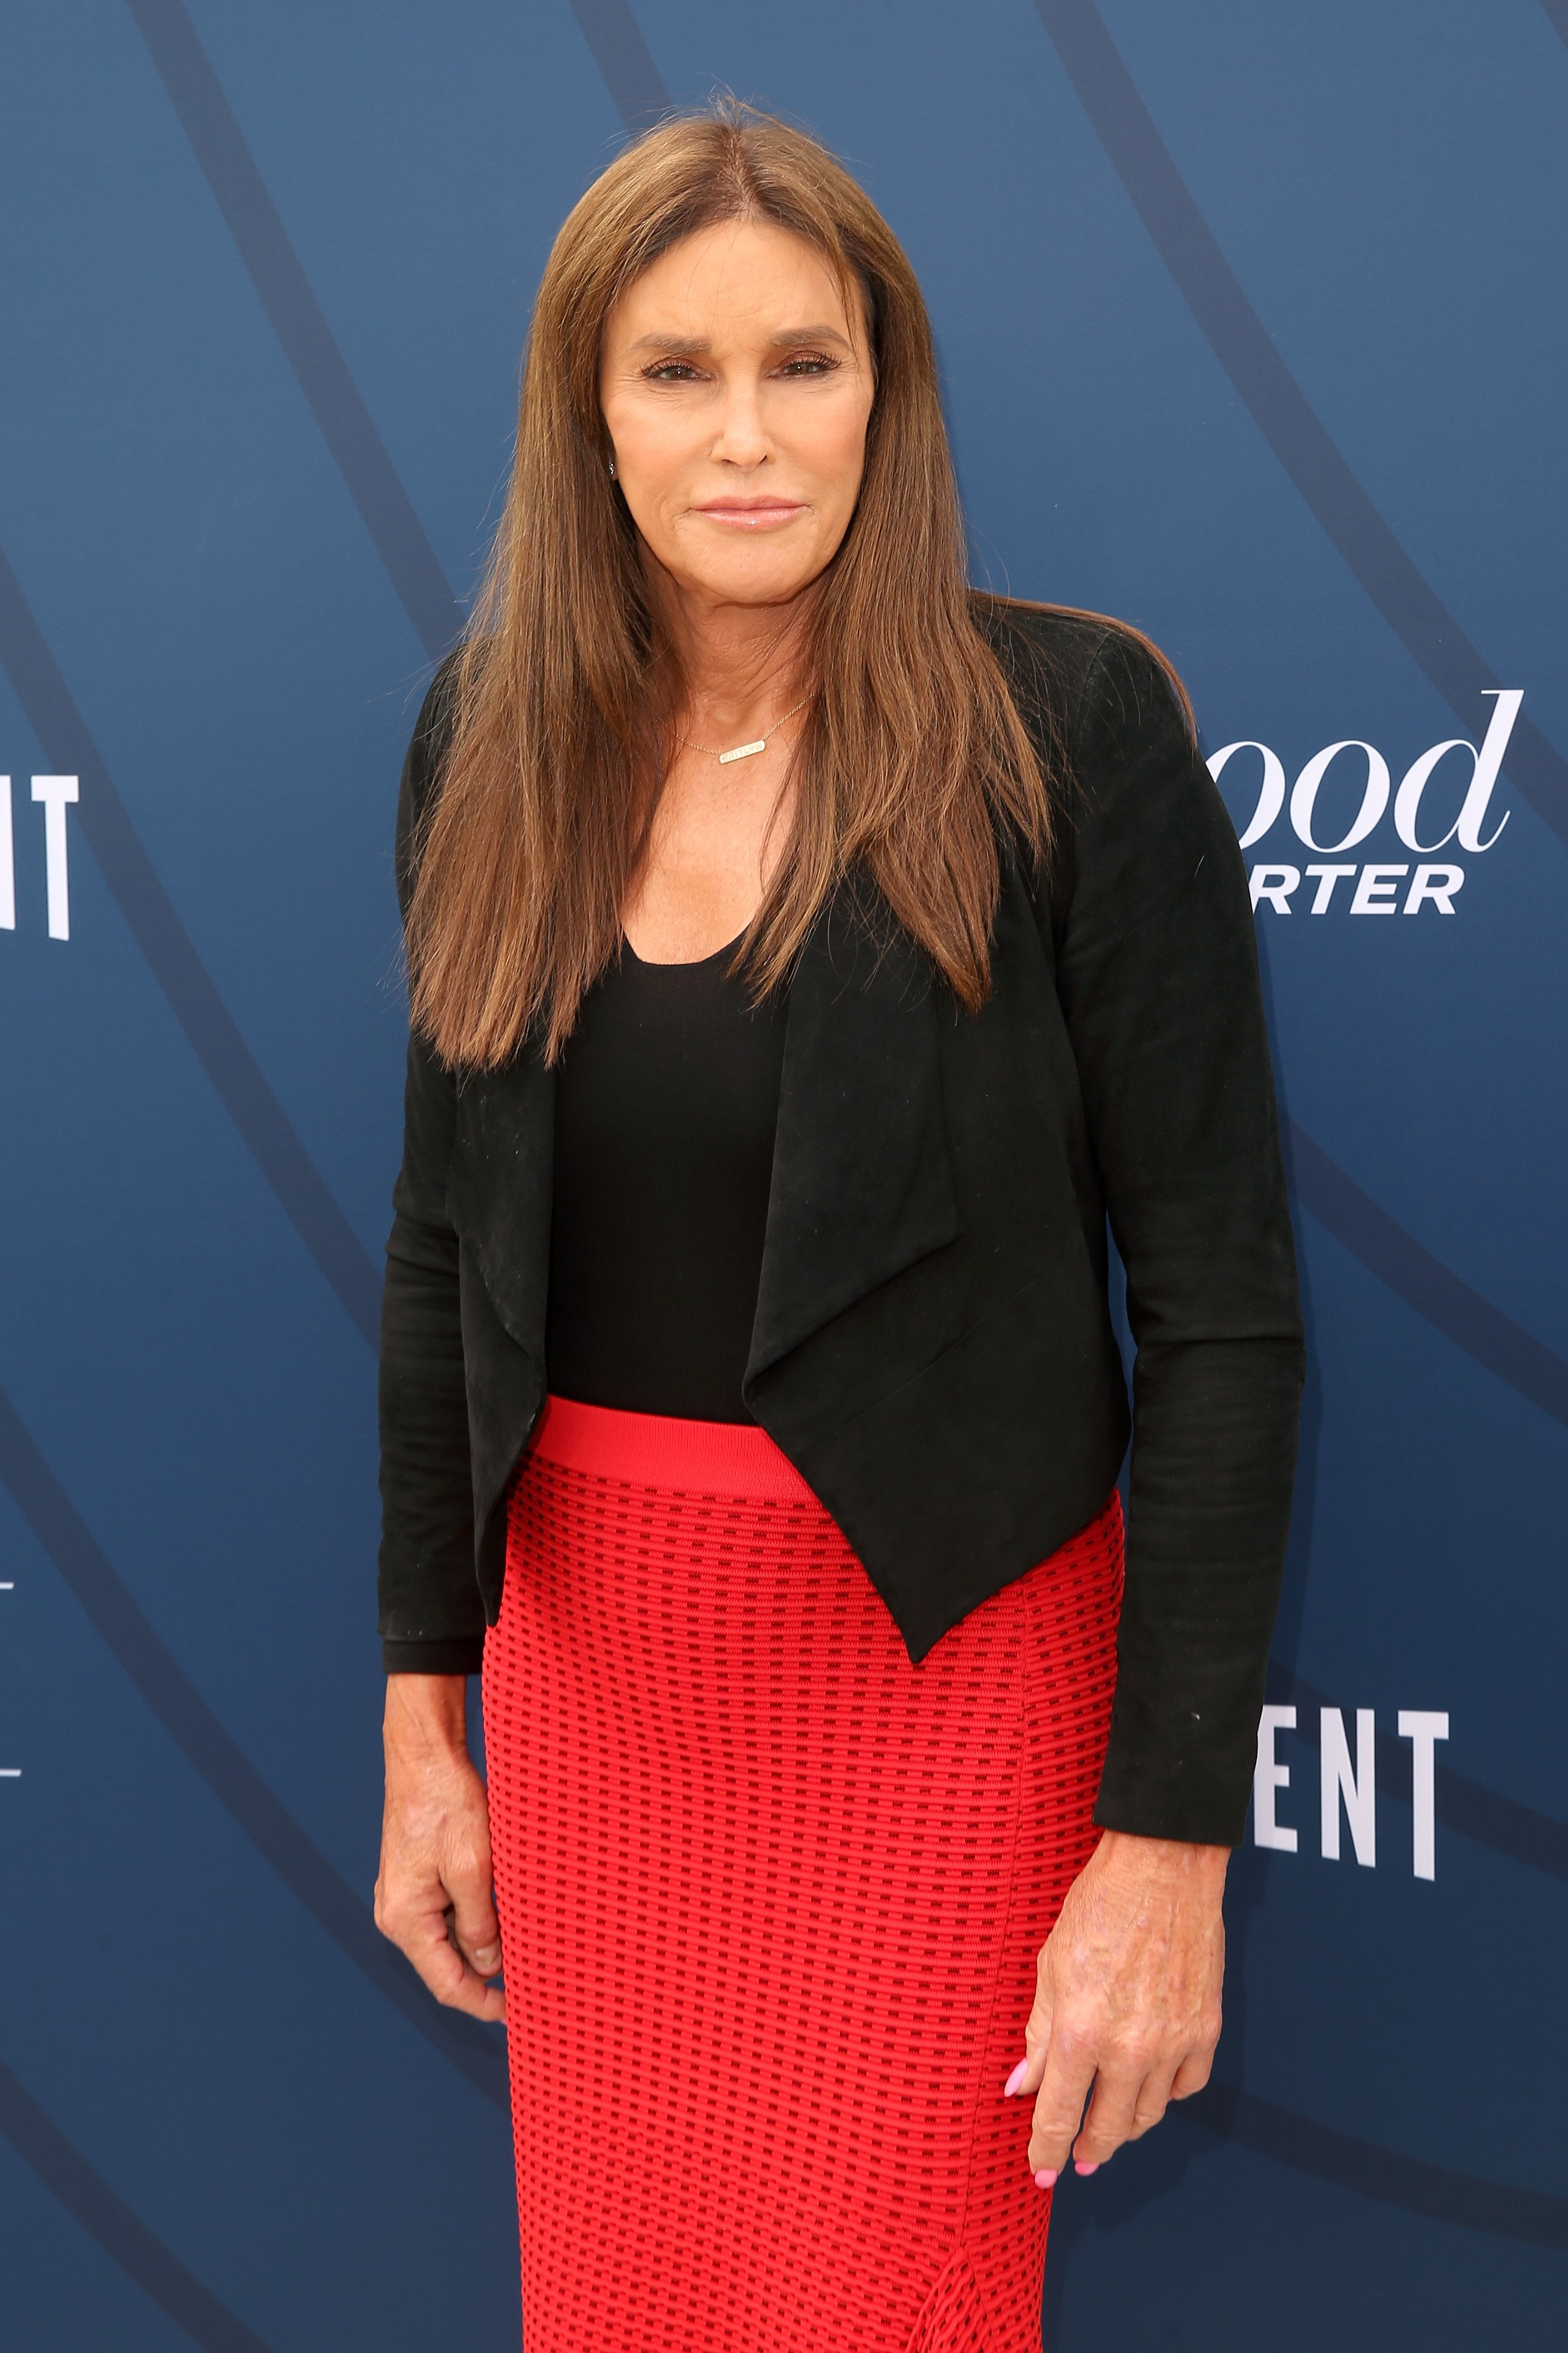 Caitlyn Jenner attends The Hollywood Reporter's Empowerment In Entertainment Event 2019 at Milk Studios on April 30, 2019, in Los Angeles, California. | Photo: Getty Images